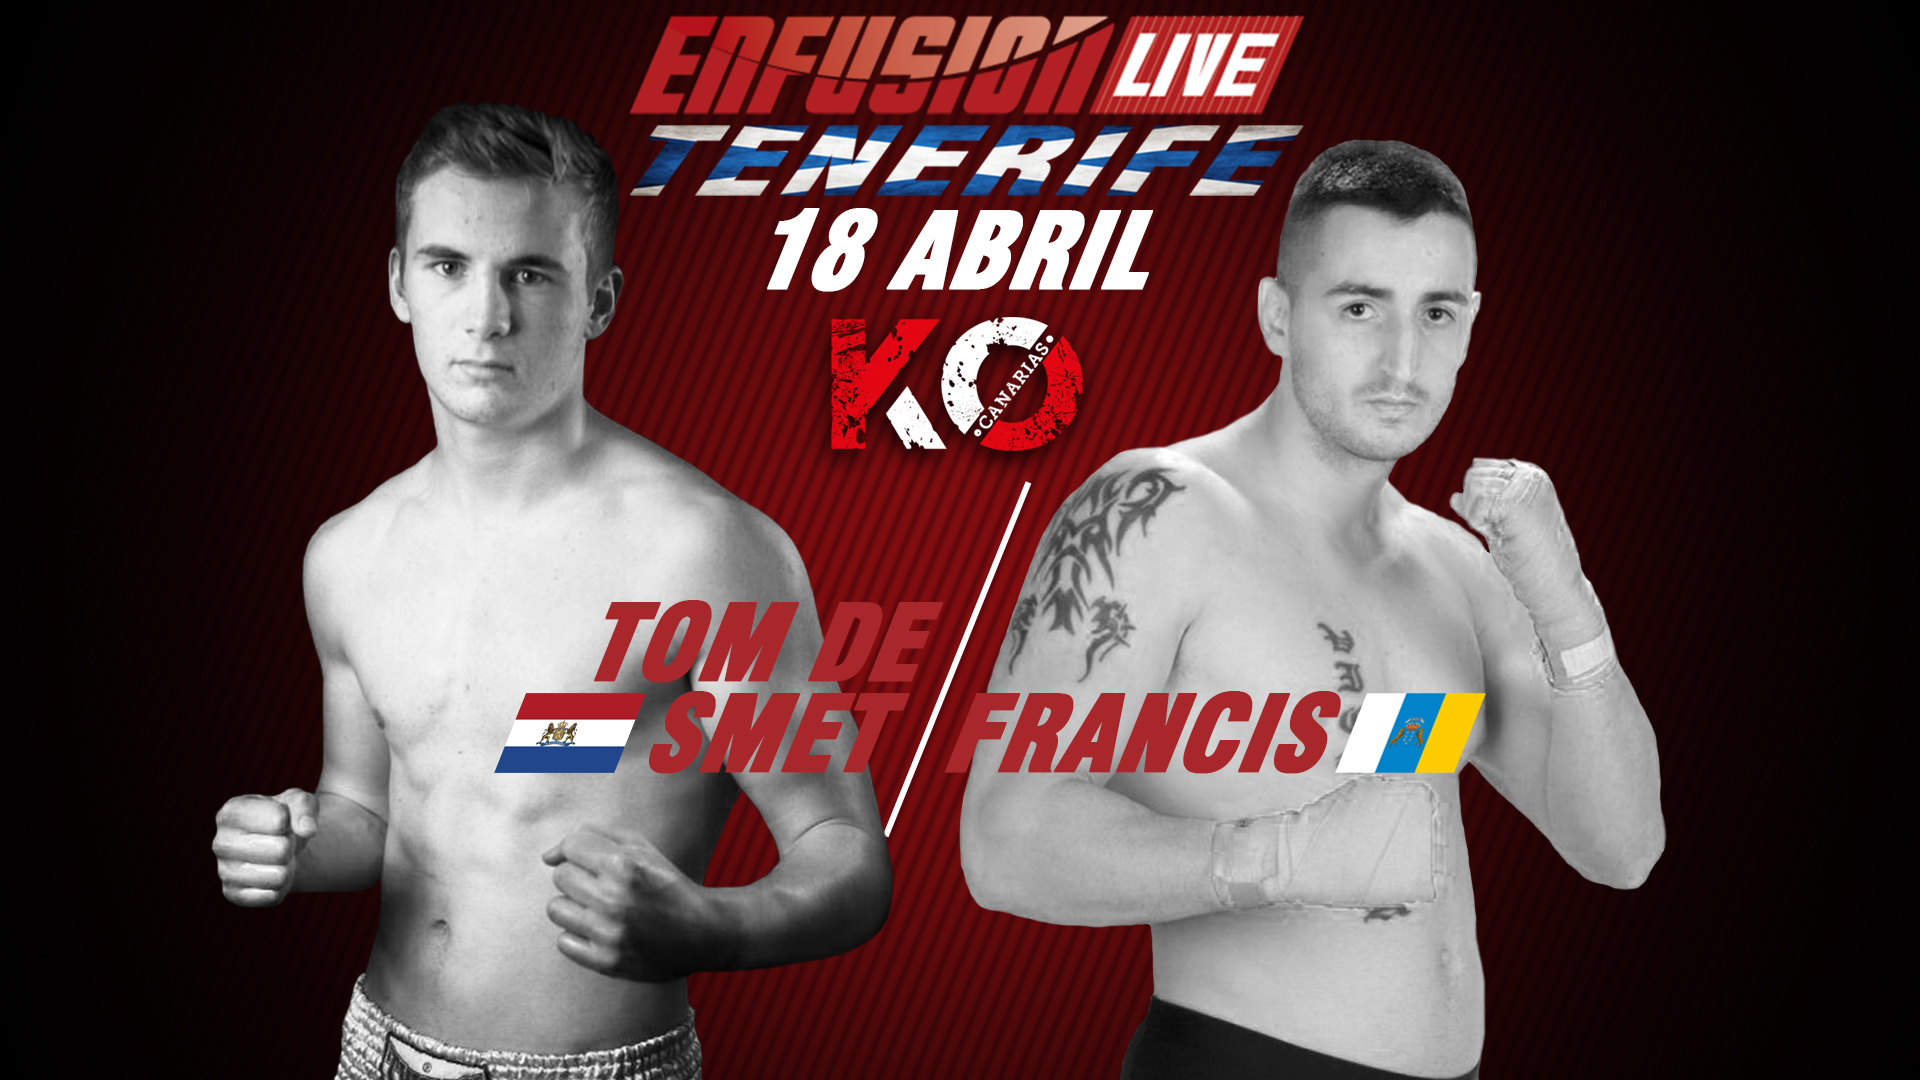 francis vs tom de smet